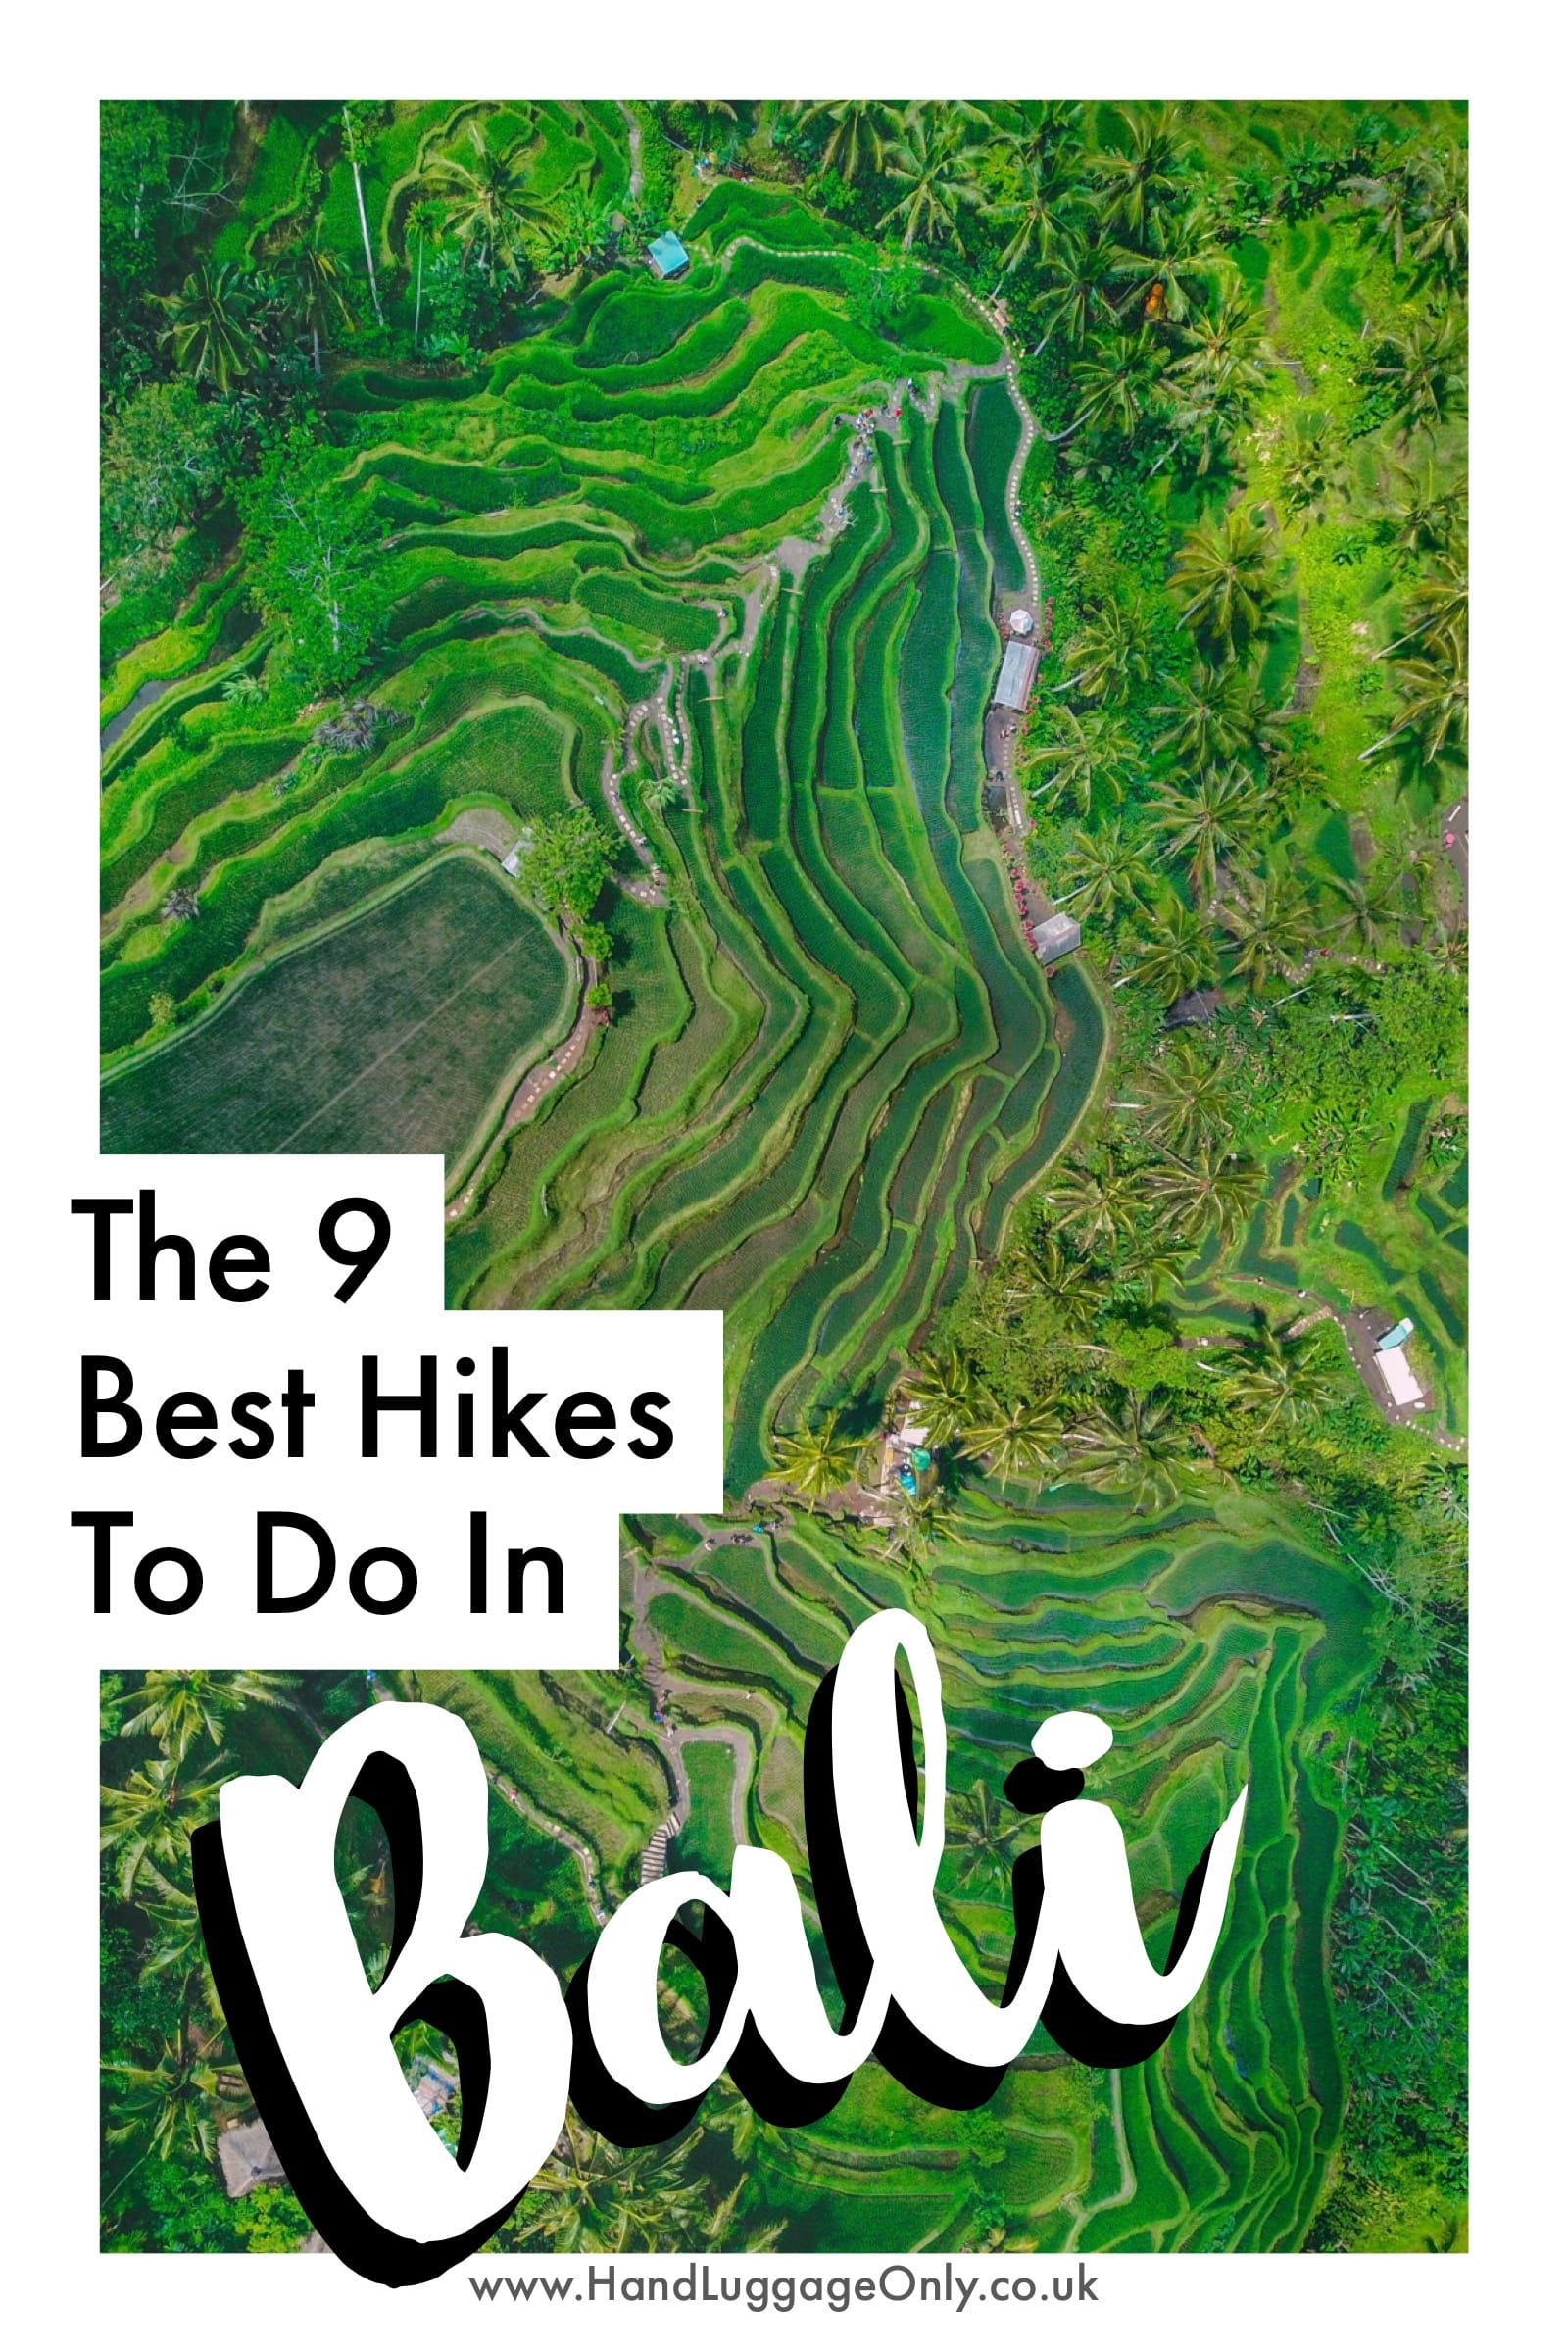 The 9 Best Hikes In Bali You Have To Experience (12)